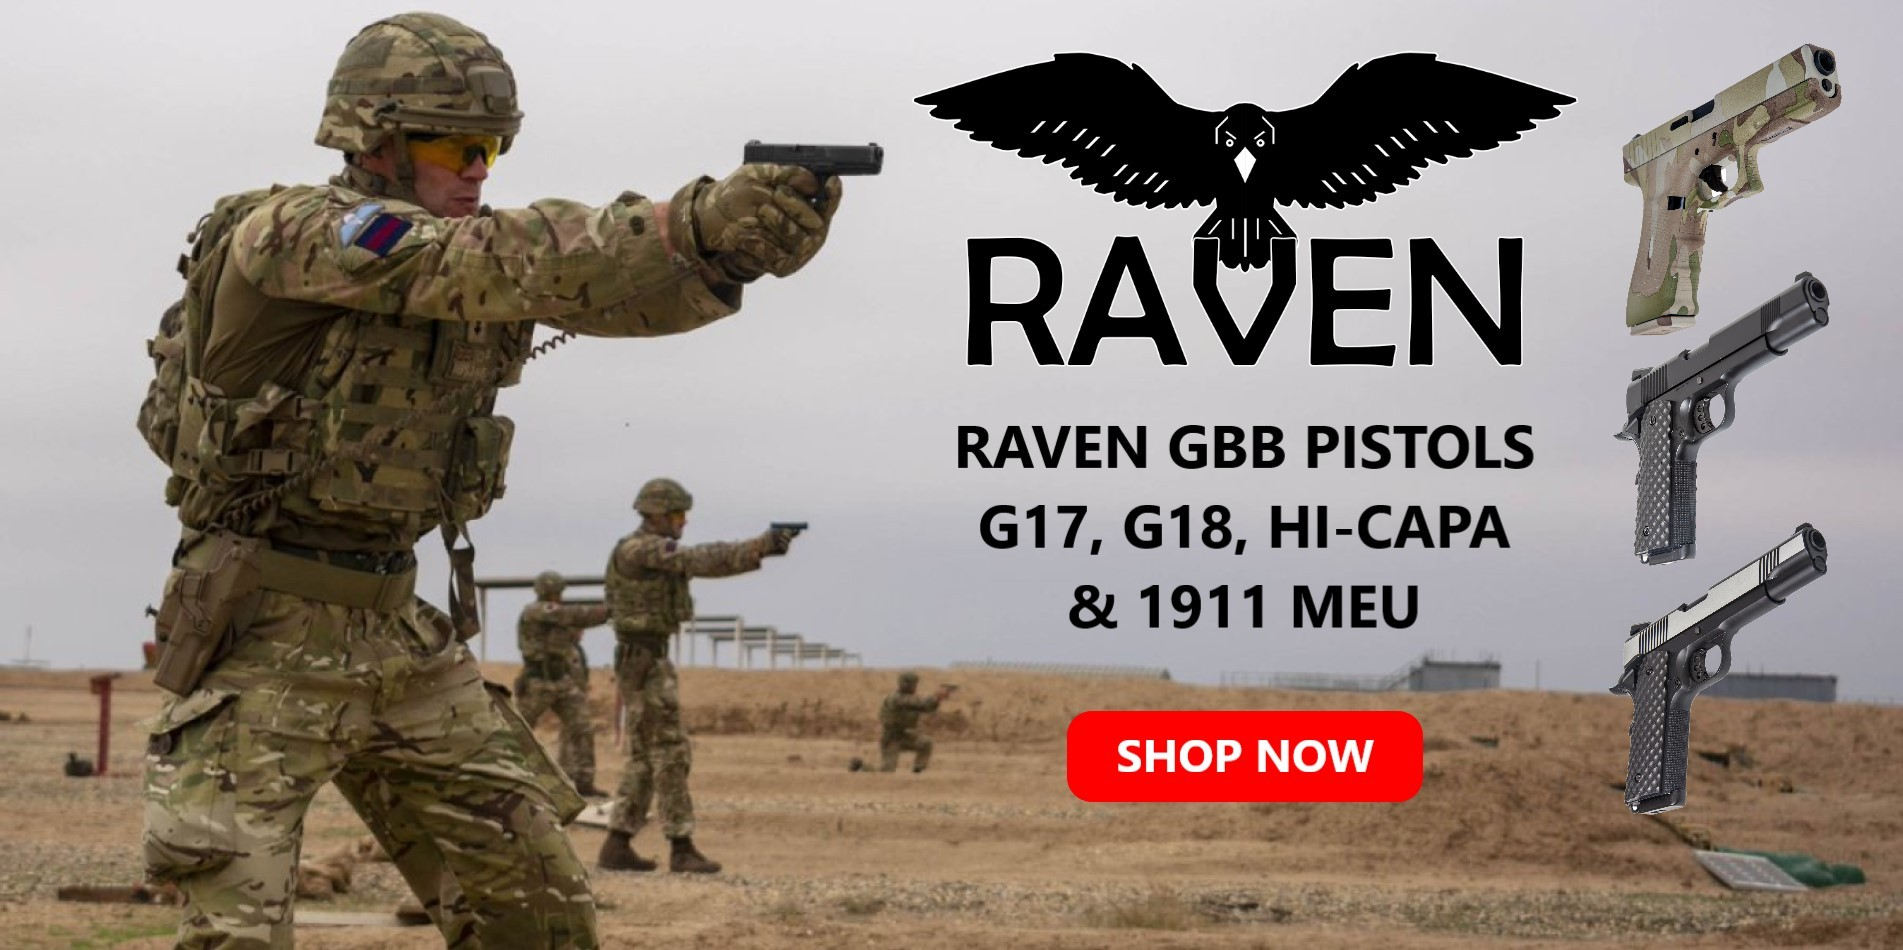 Raven GBB Pistols Prices Reduced